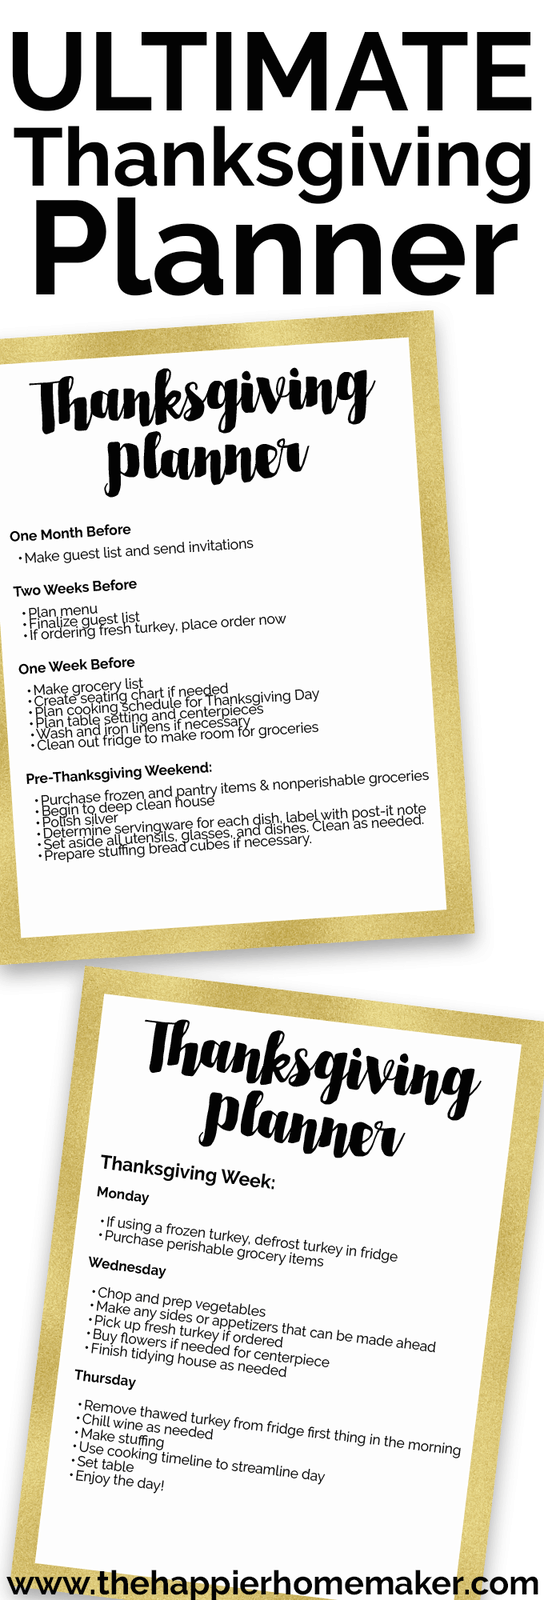 The ultimate Thanksgiving planner printable - help keep your holiday organized and stress free with this free printable schedule.